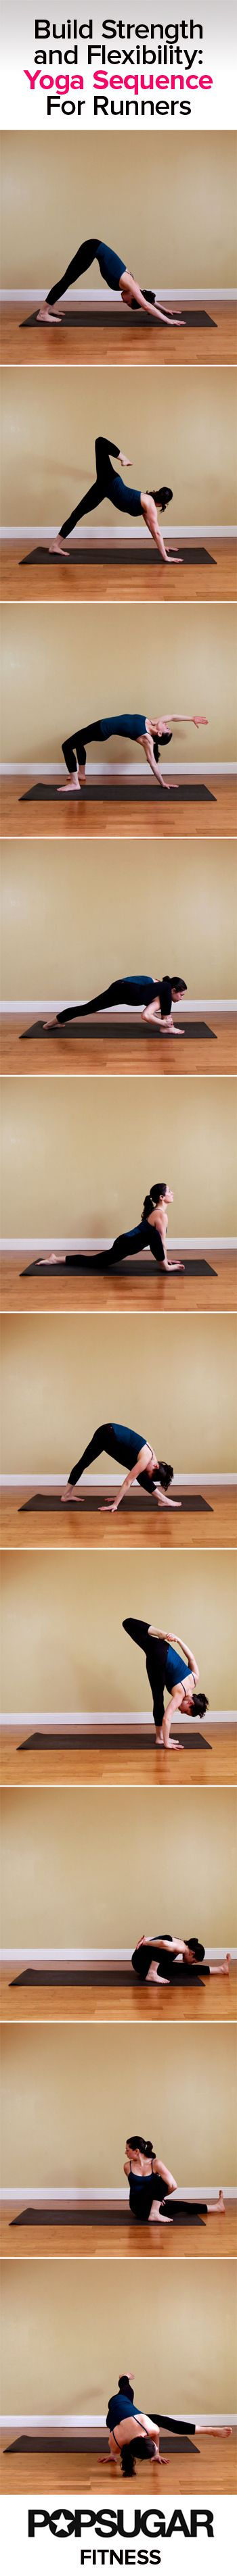 Yoga Sequence For Runners Legs | Poster